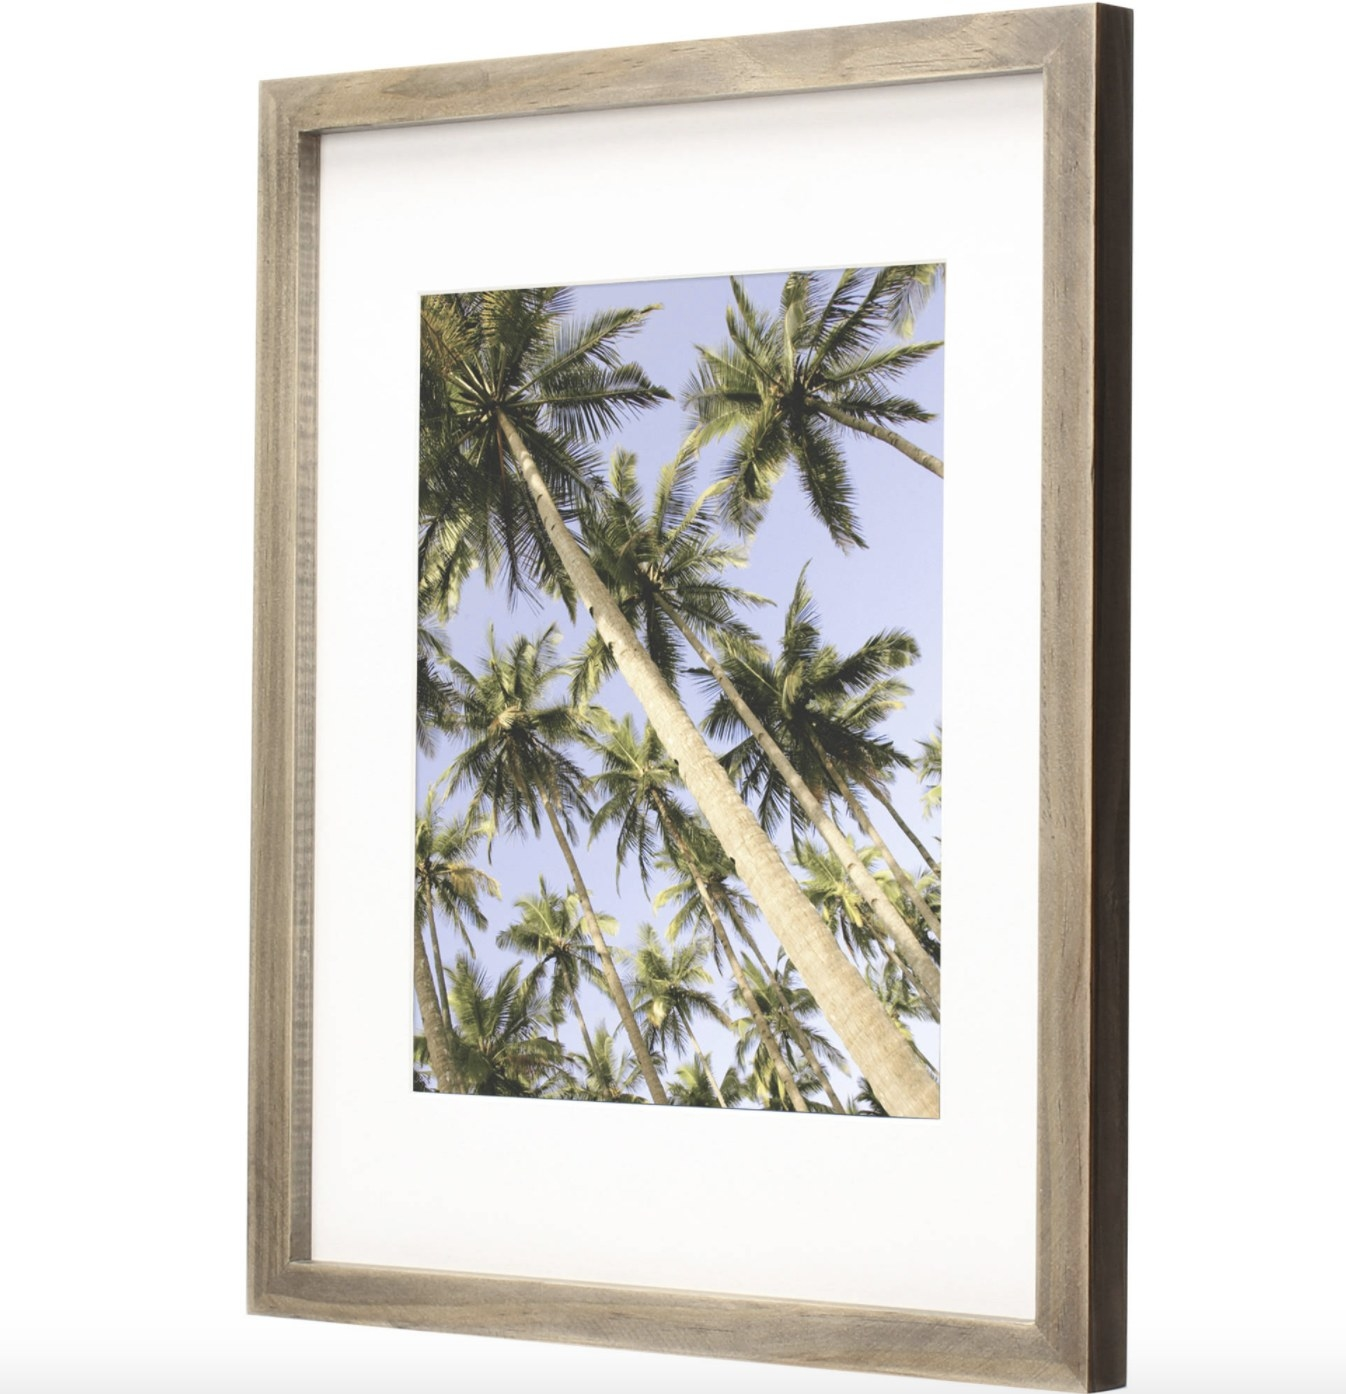 The rustic frame is grey with a photo of palm trees in a blue sky